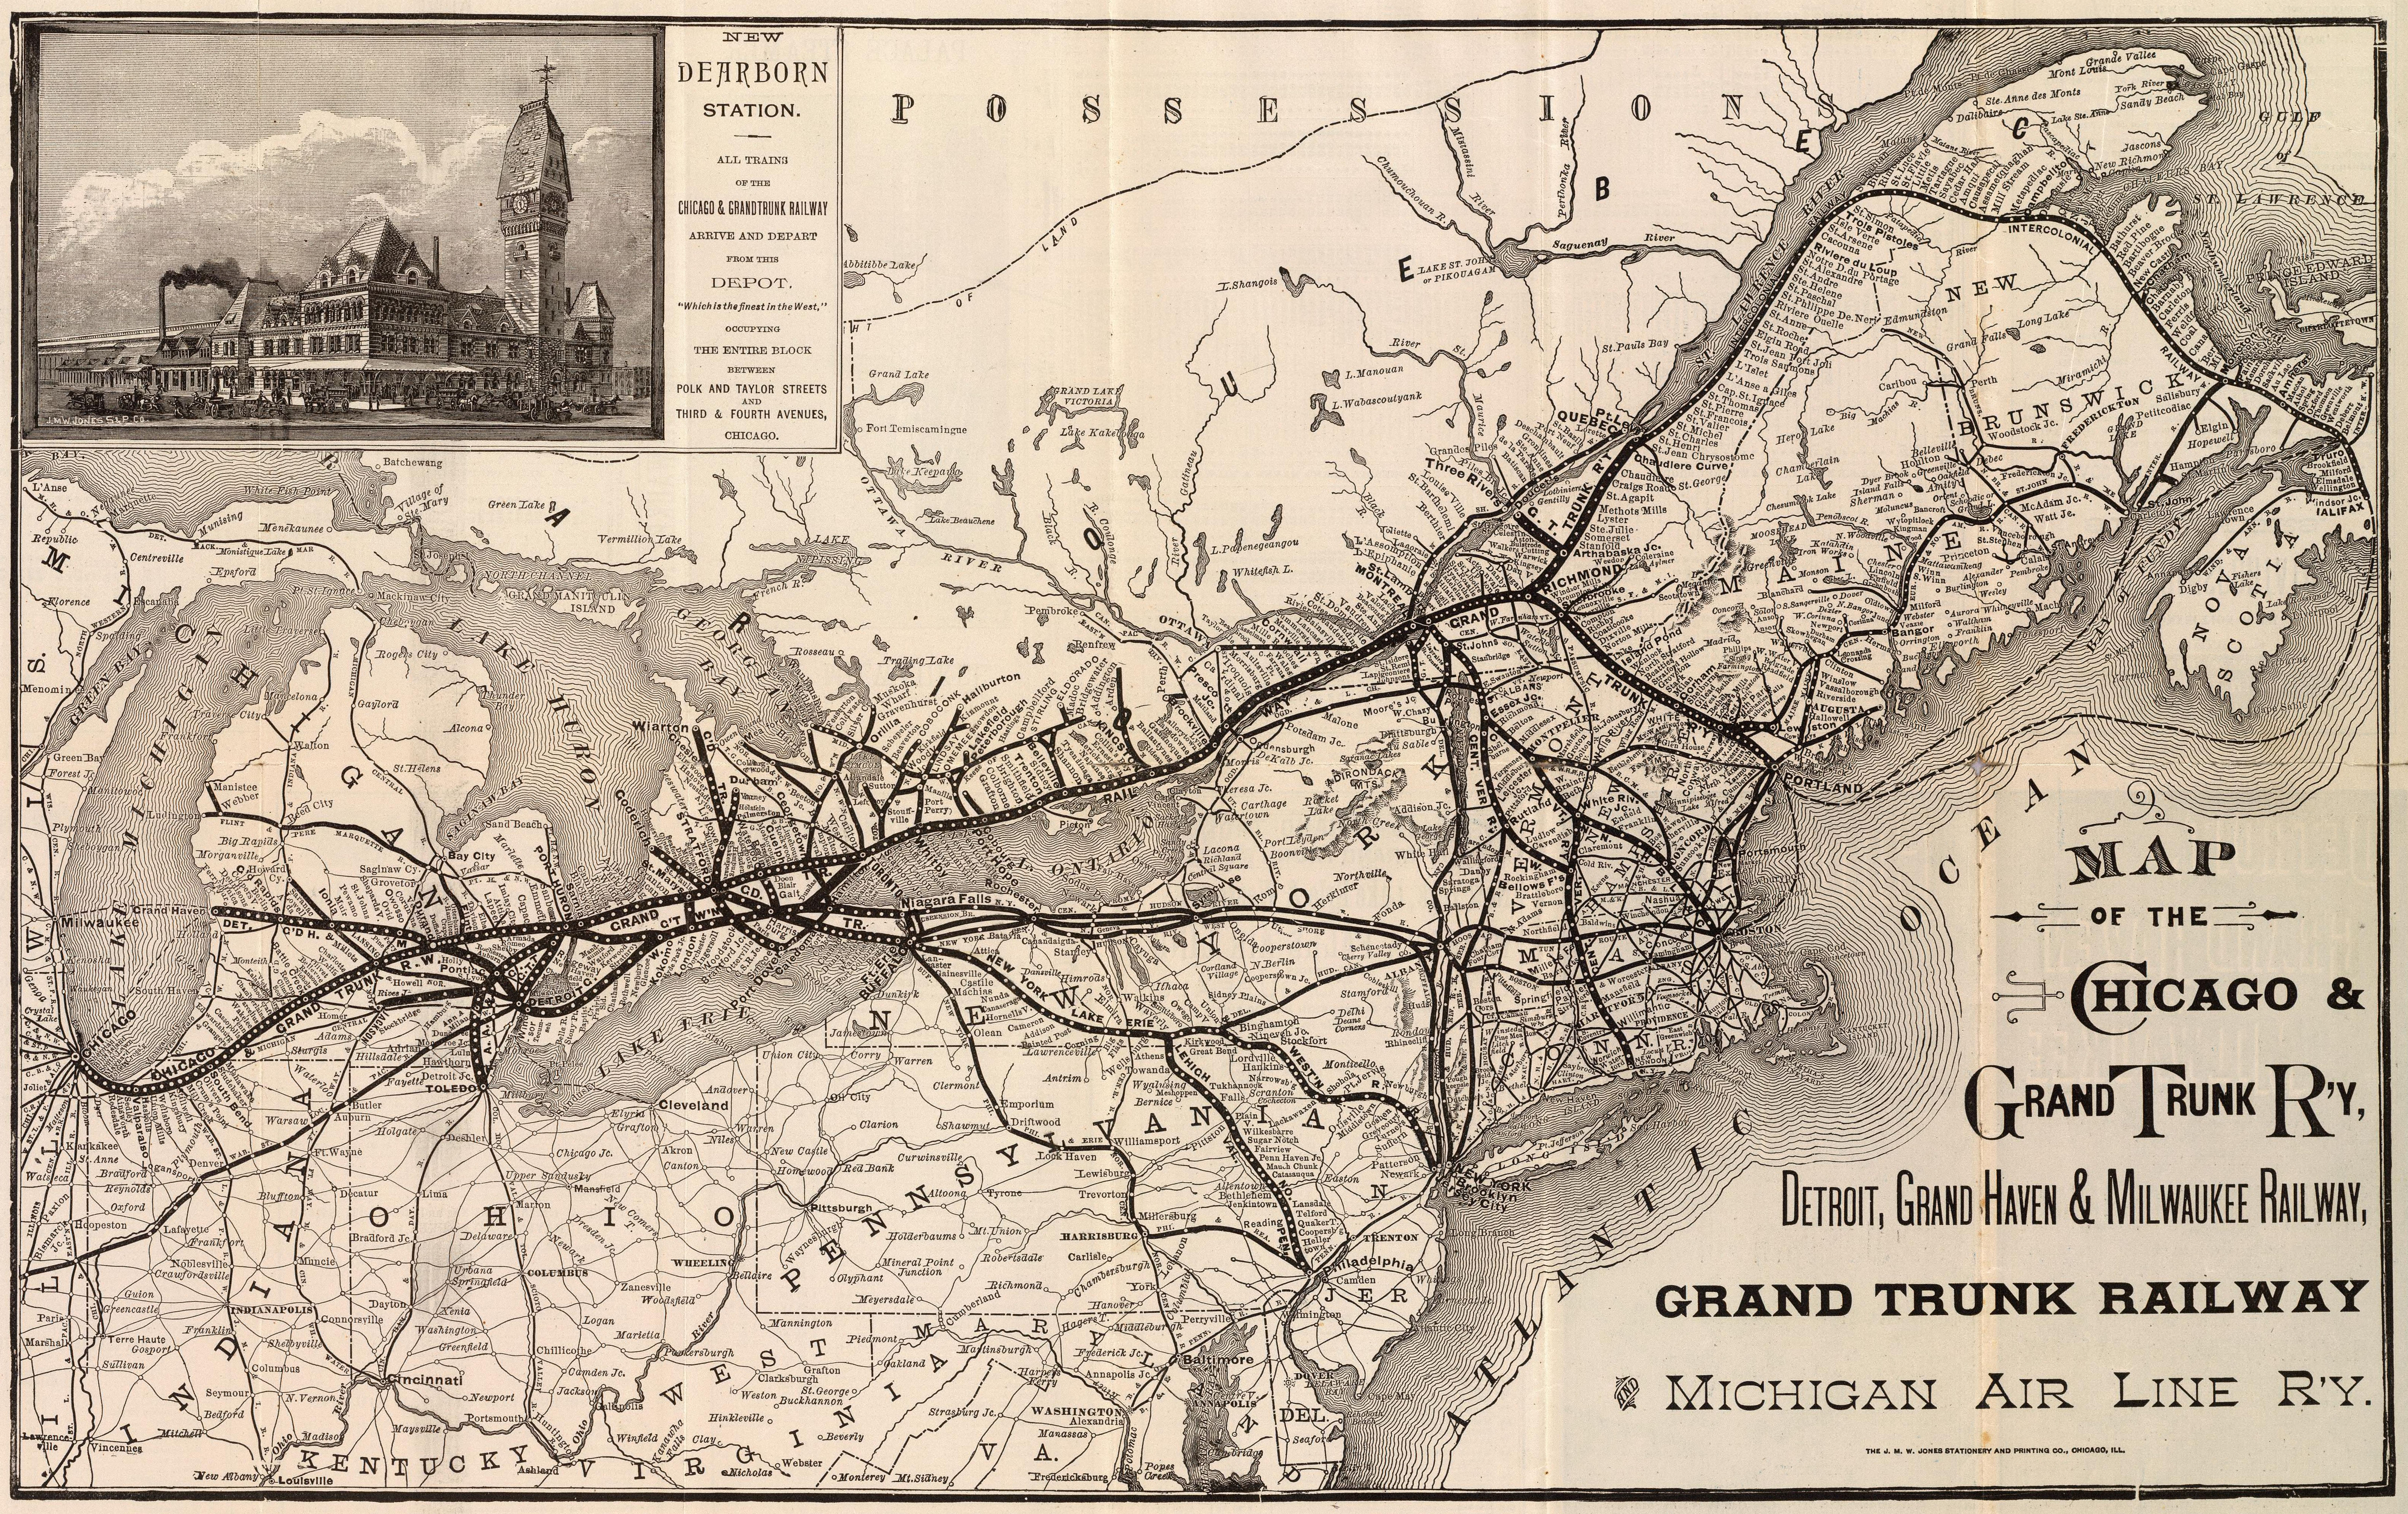 Grand Trunk Western Railroad - Wikipedia on chicago train, chicago rail yards, chicago commuter rail map, chicago rail terminal, chicago light rail map, united states freight railroad map, vancouver freight rail map, chicago area rail map, chicago rail transit map,